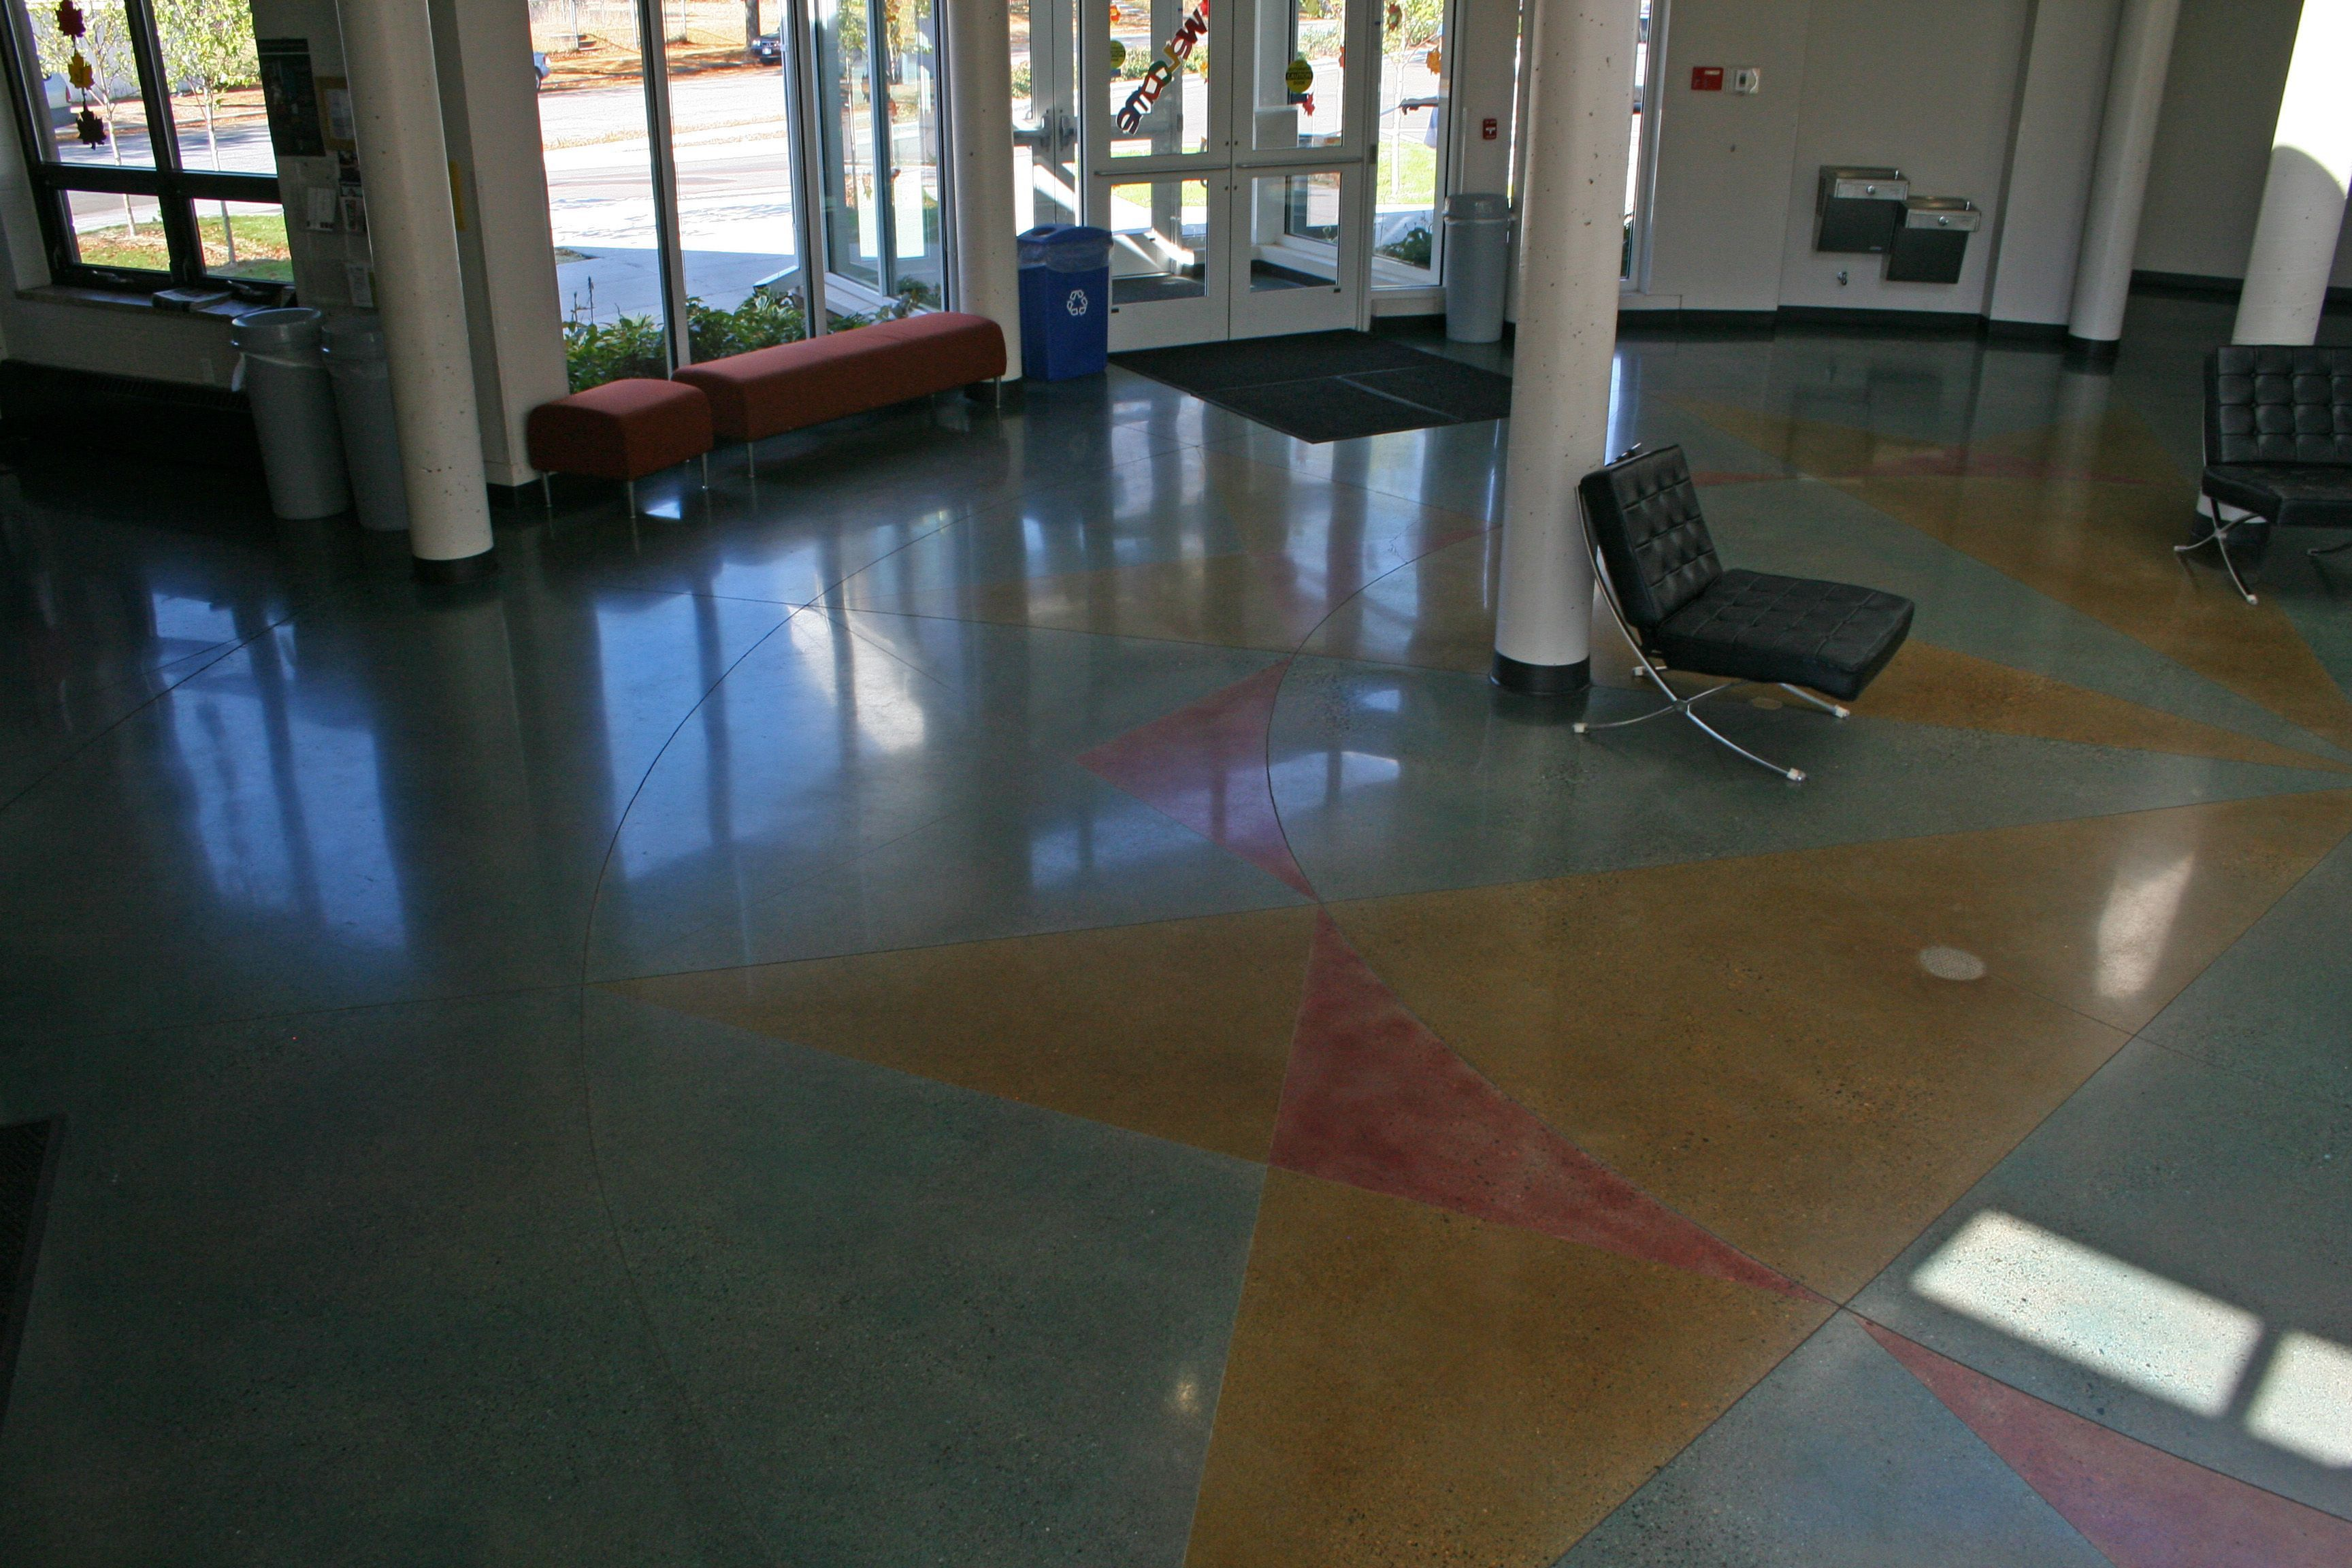 floors college polishing colorado coloradomtncollege mountain bomanite patene teres interior showroom custom concrete